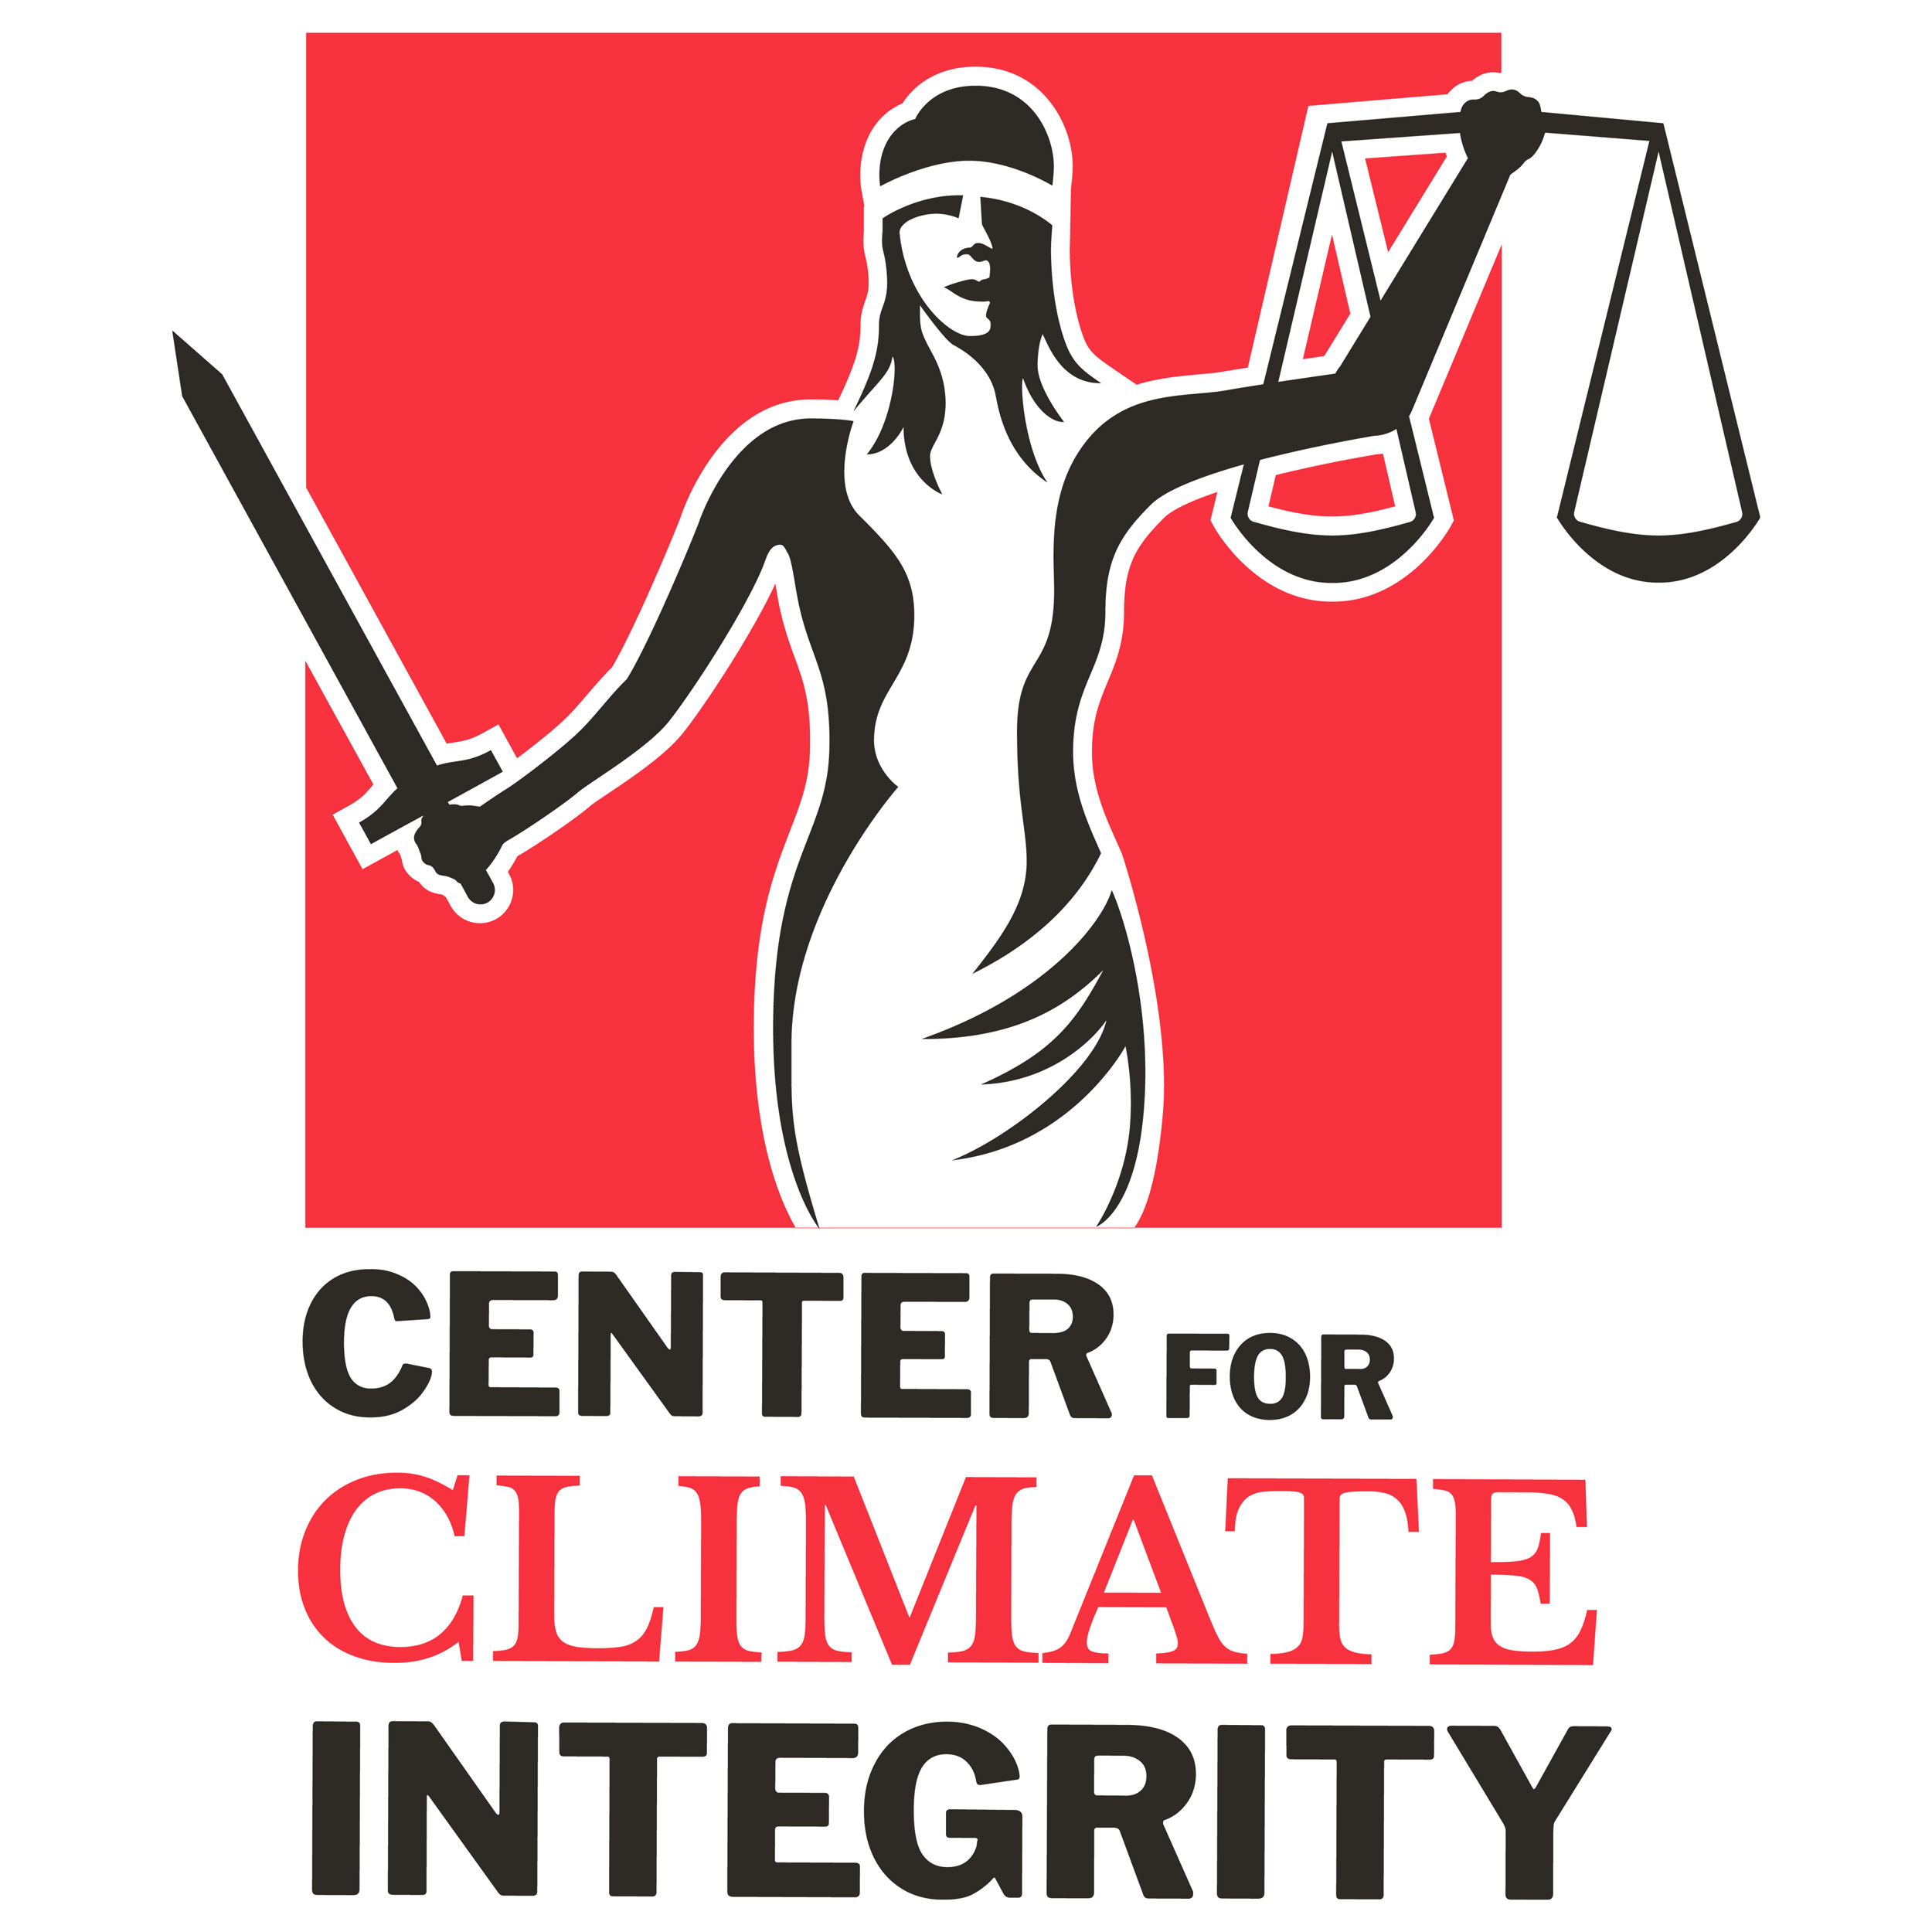 Center for Climate Integrity